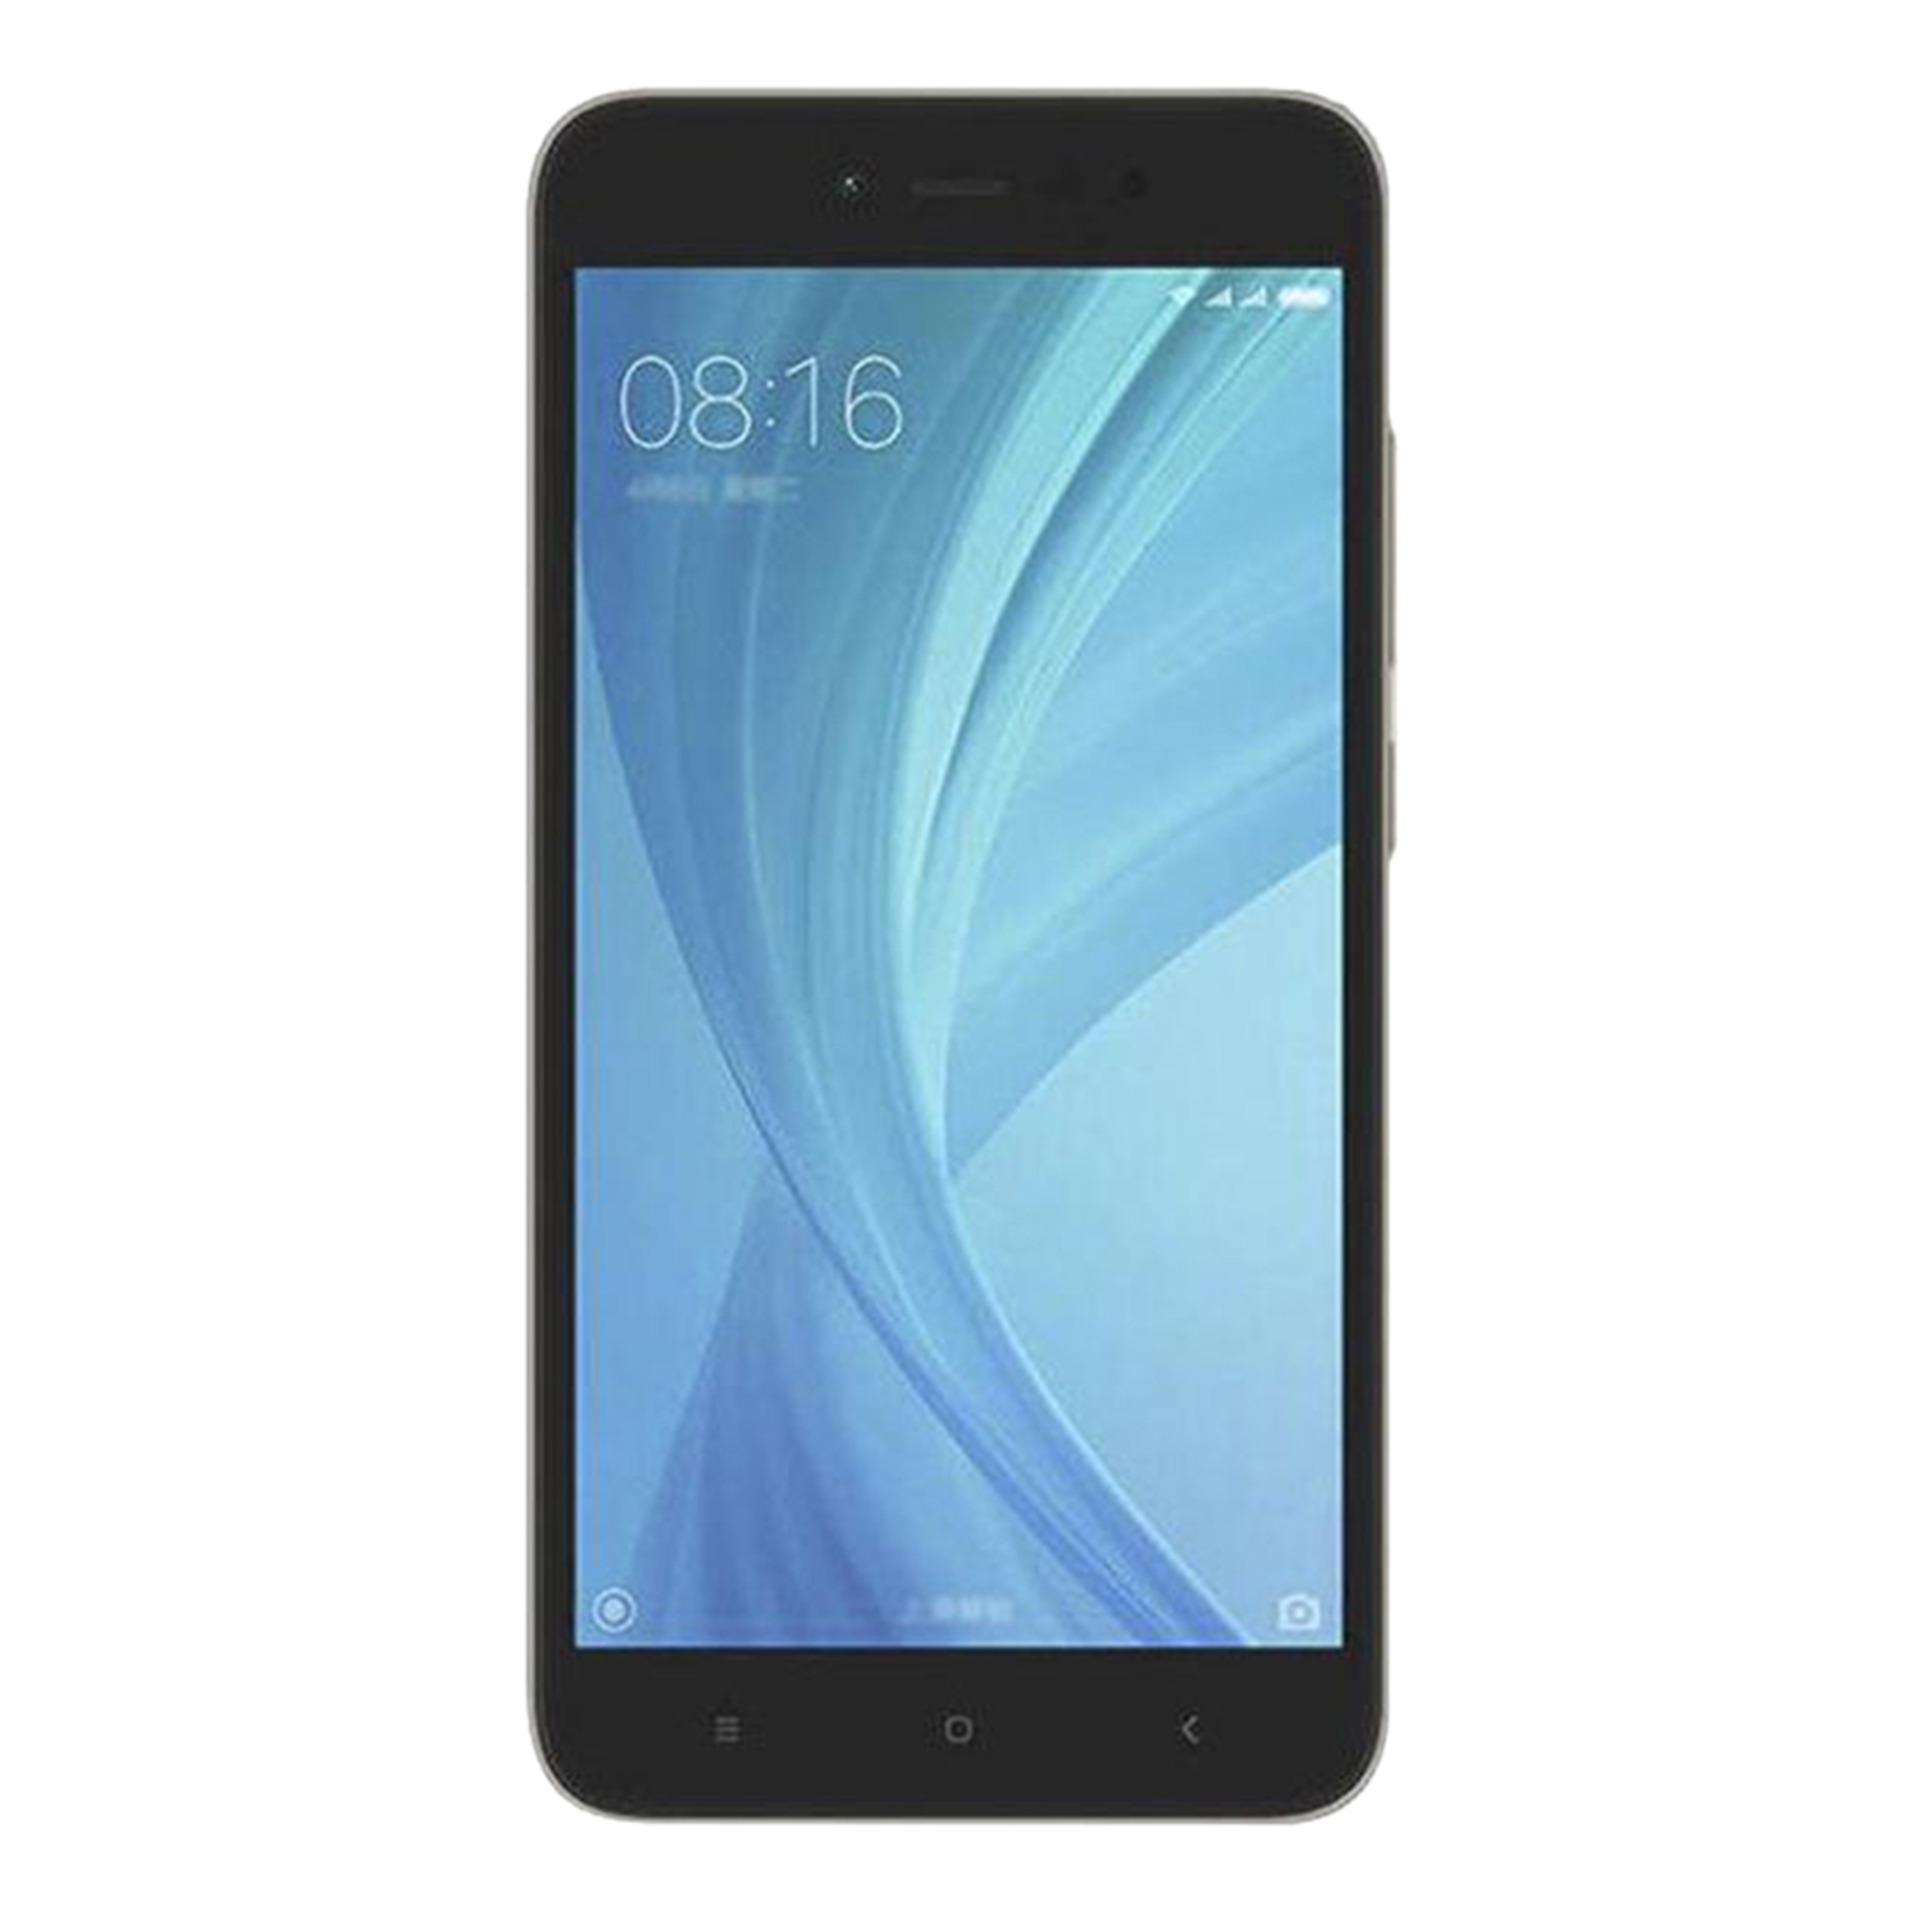 "Redmi Note 5A Prime Smartphone - 5.5"" - 3GB RAM - 32GB ROM - 13MP Camera - Gray"